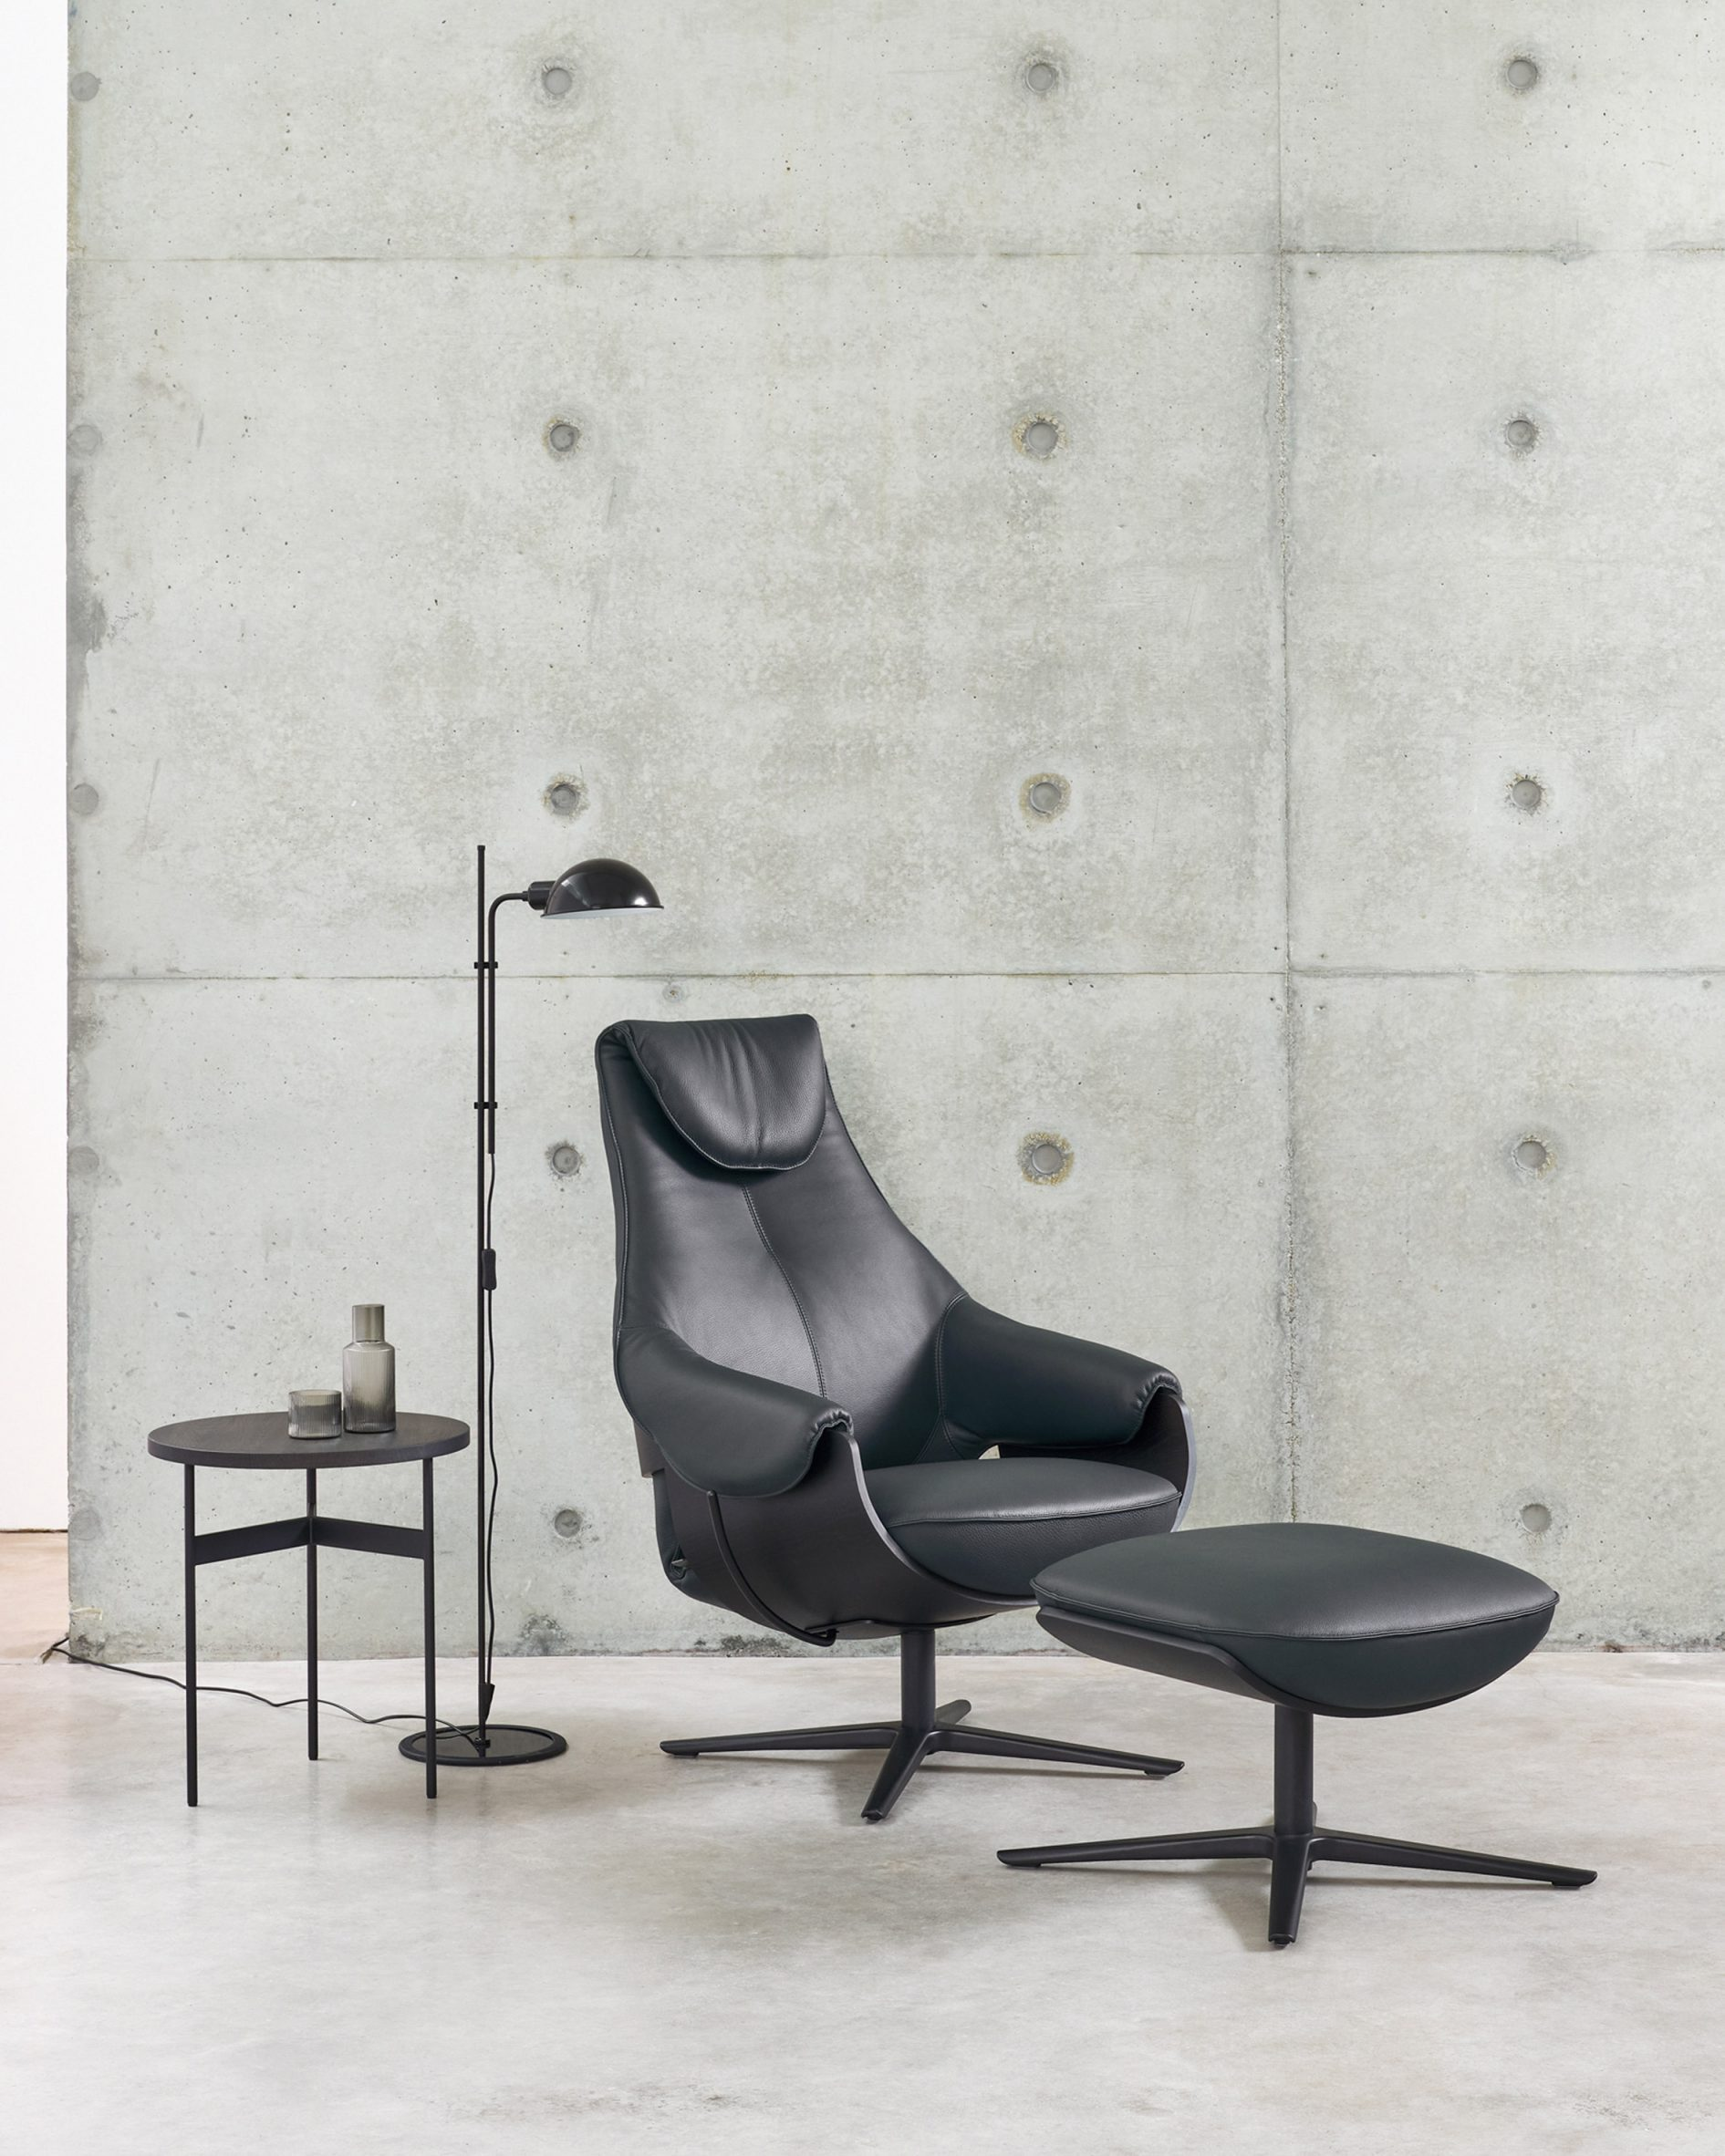 LXR10 armchair in a black leather finish with an accompanying footrest situated in a neutral-toned room